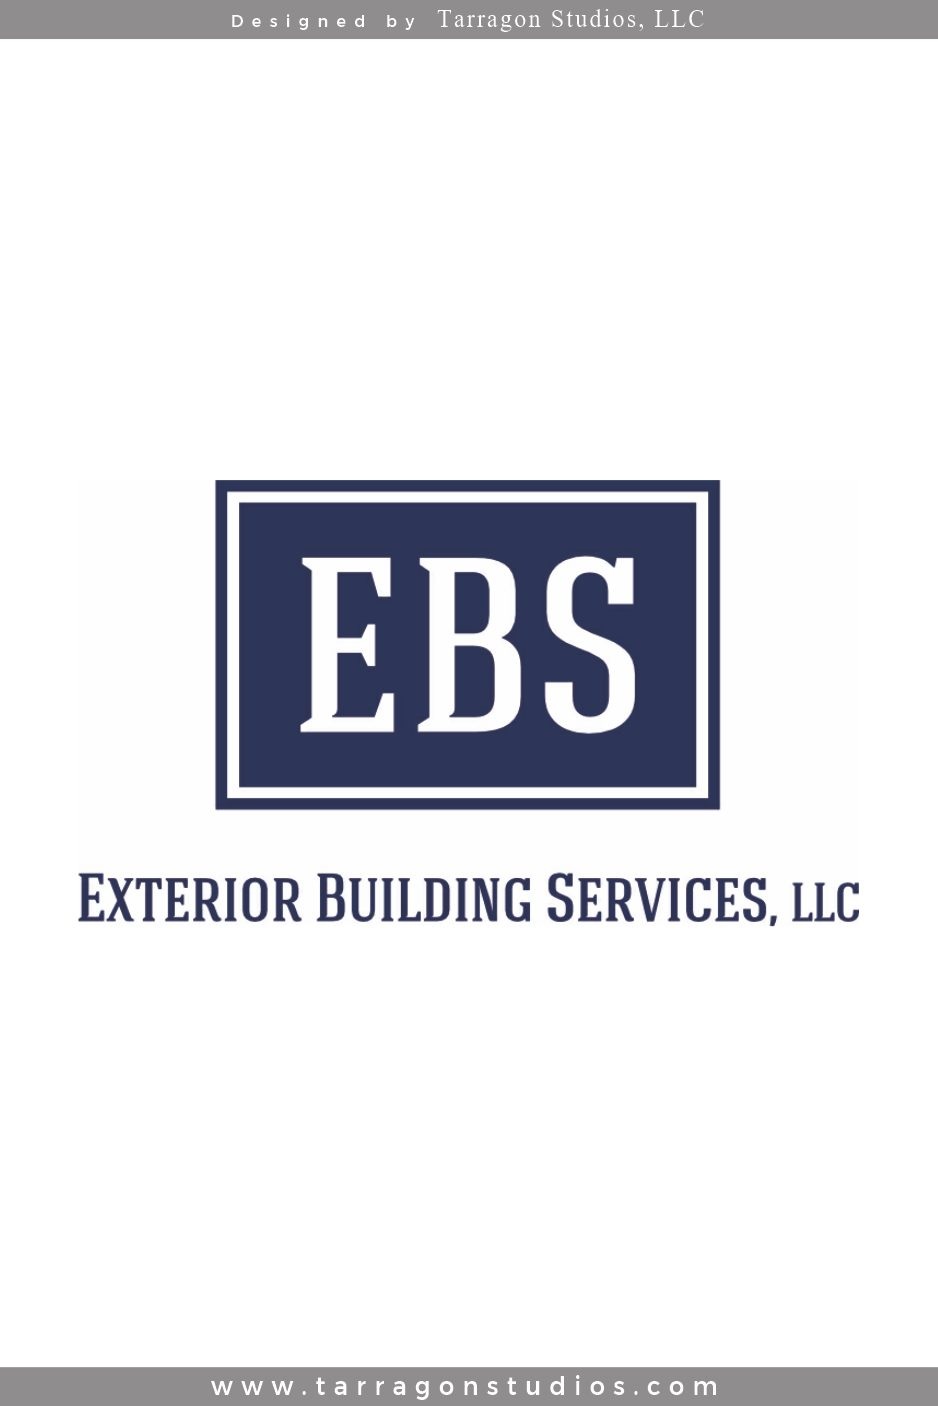 EBS, Exterior Building Services Logo Refresh by Tarragon Studios. Keep Reading to see all the logo variations! #logo #design #construction #masculine